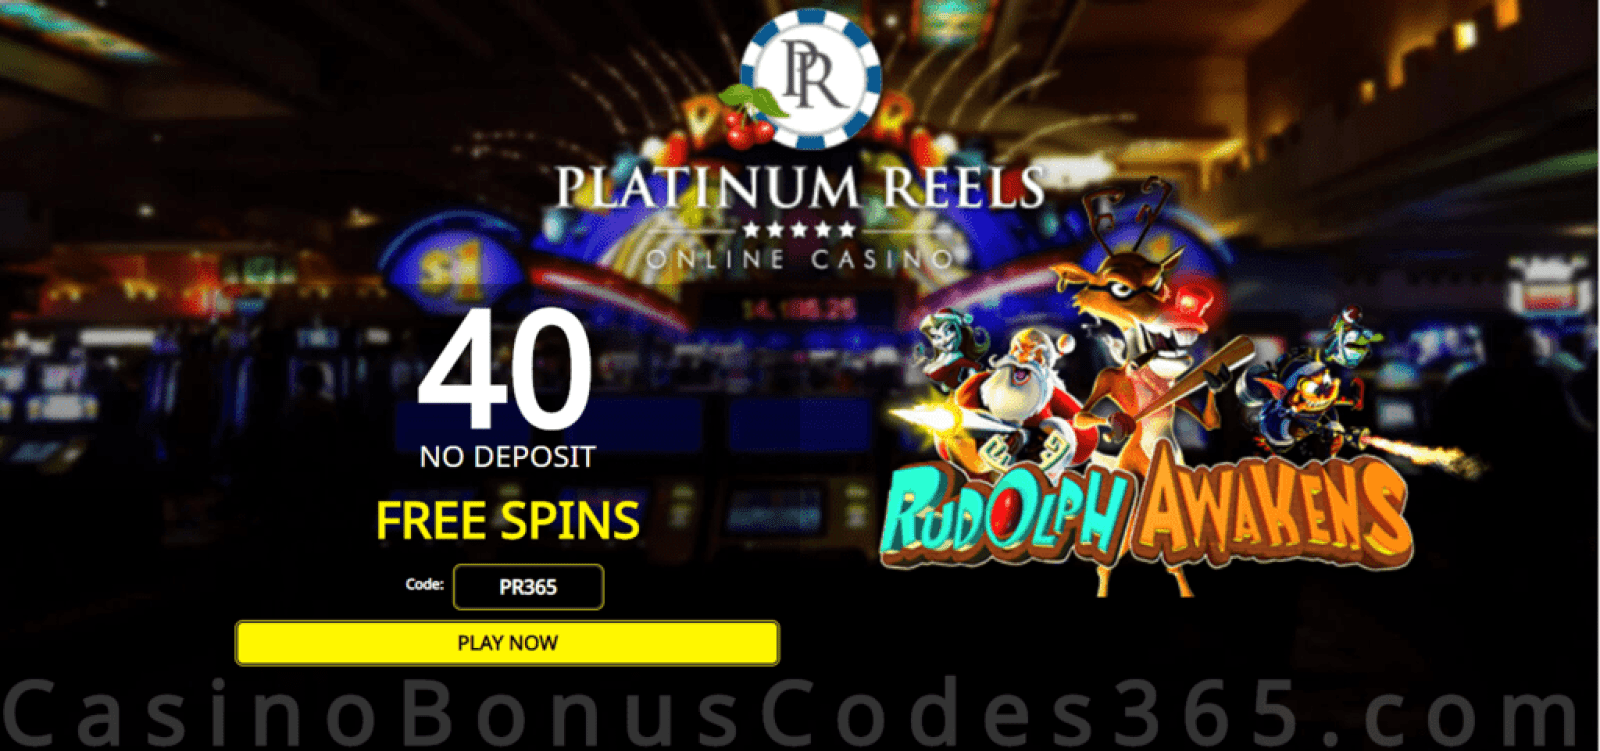 Platinum Reels Exclusive 40 FREE Spins on RTG Rudolph Awakens Special Offer